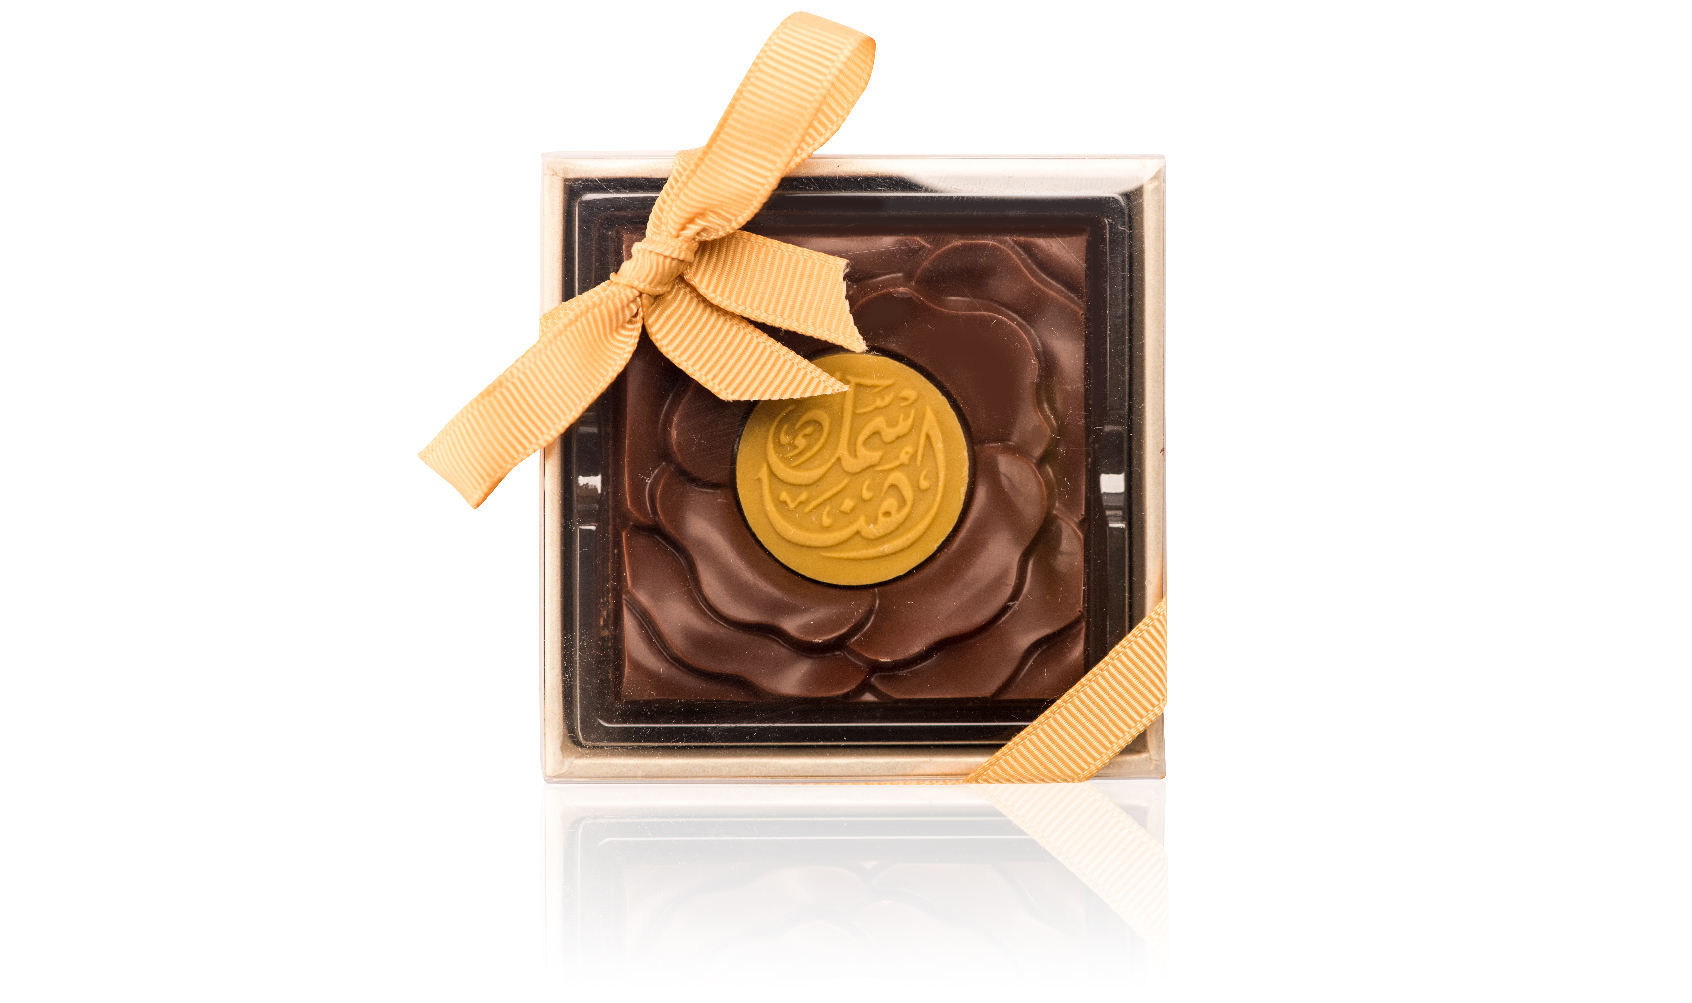 Transperent Box With rose chocolate